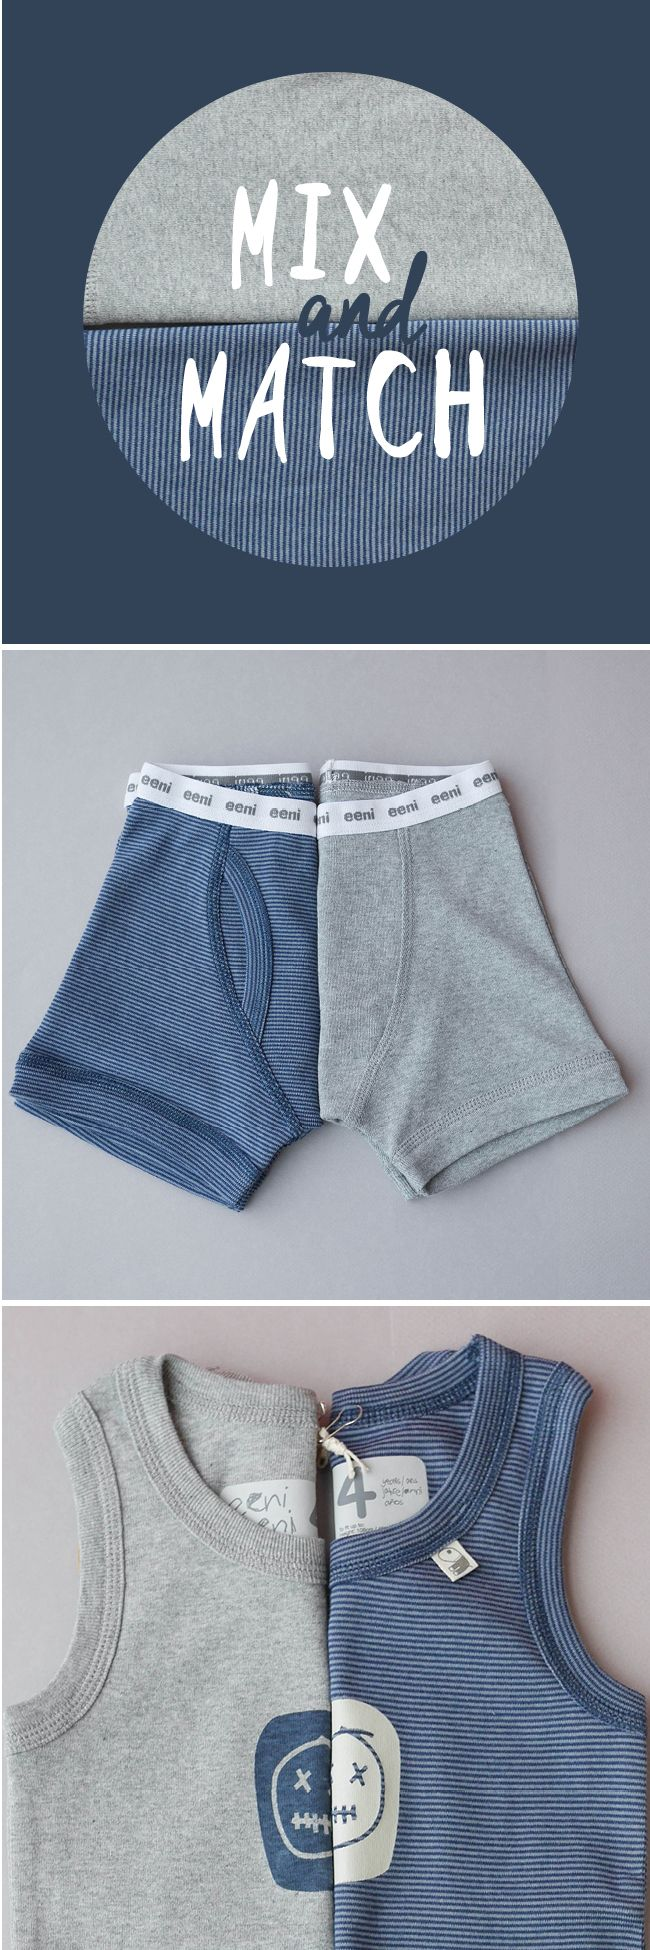 Mix and match boys underwear, these comfy 100% cotton co-ordinates are one of our best sellers - have you tried them? Buy 3 or more and save with our special website offer